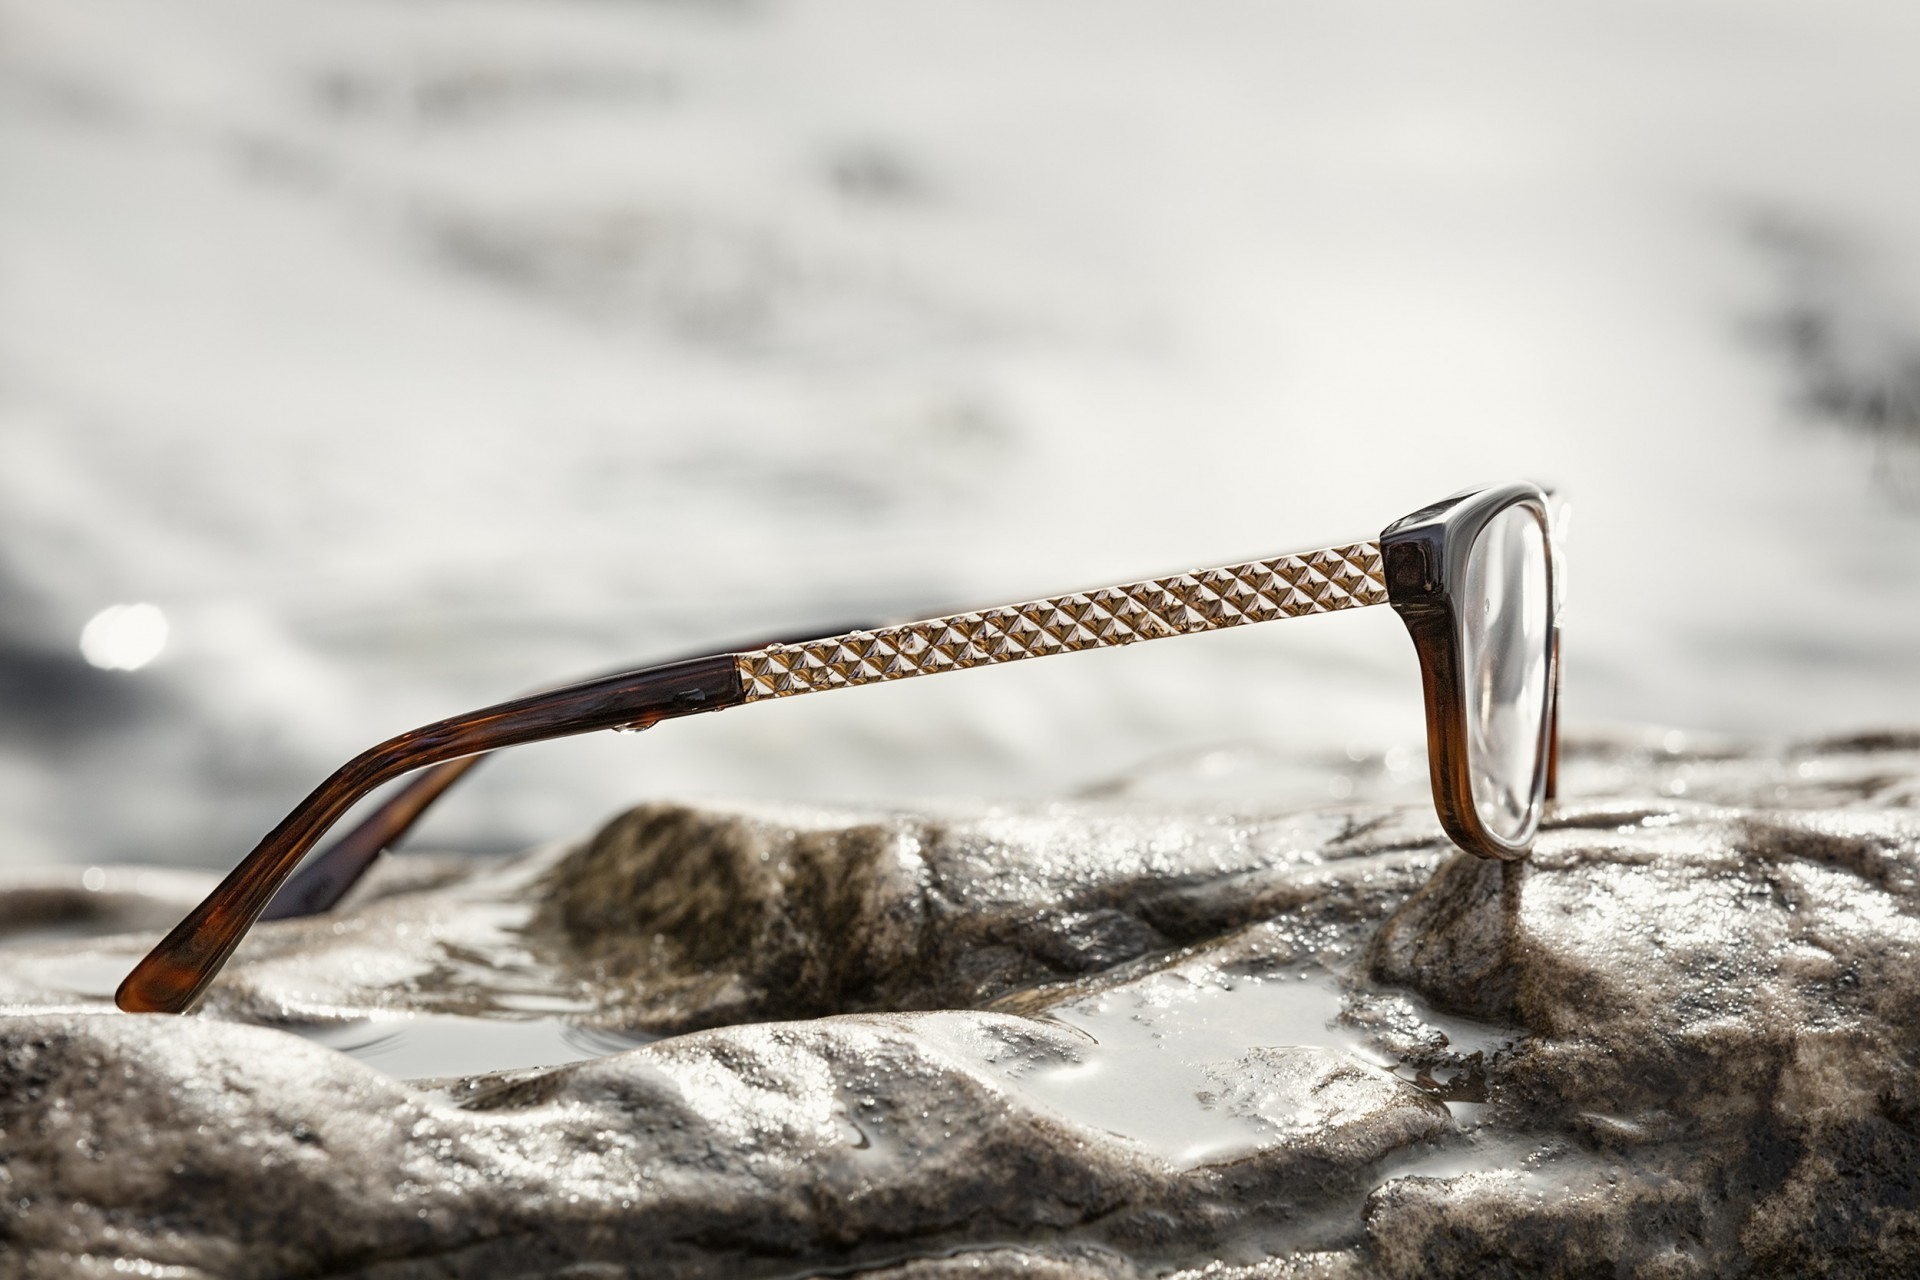 Skaga, Scandinavian Eyewear. Fall - Winter collection